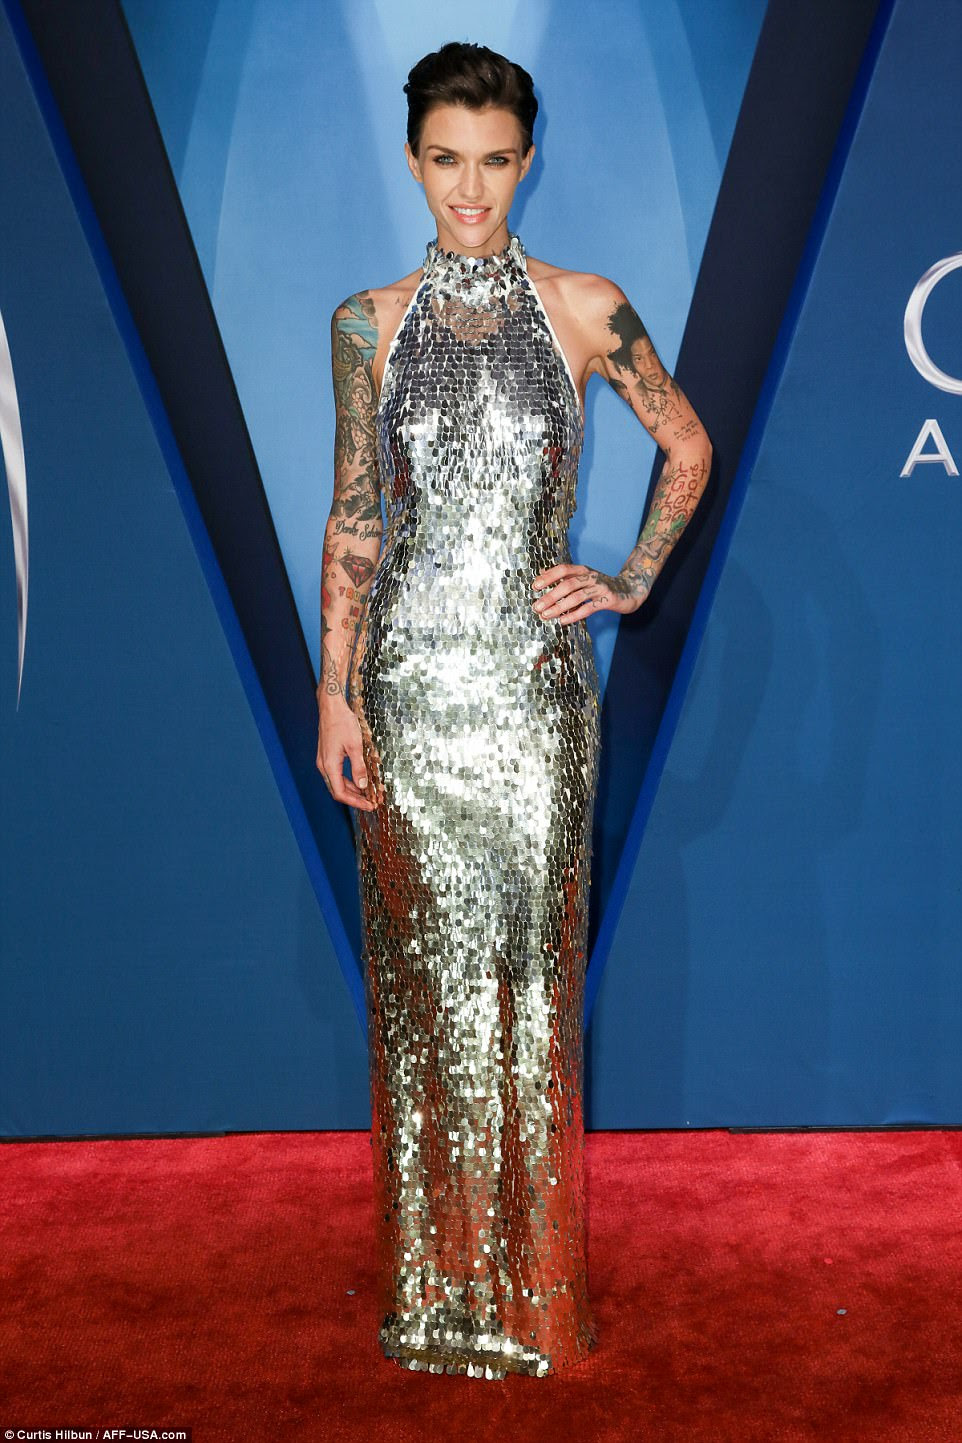 All that glitters! Ruby Rose dazzled in a chic, floor length dress with silver sequins